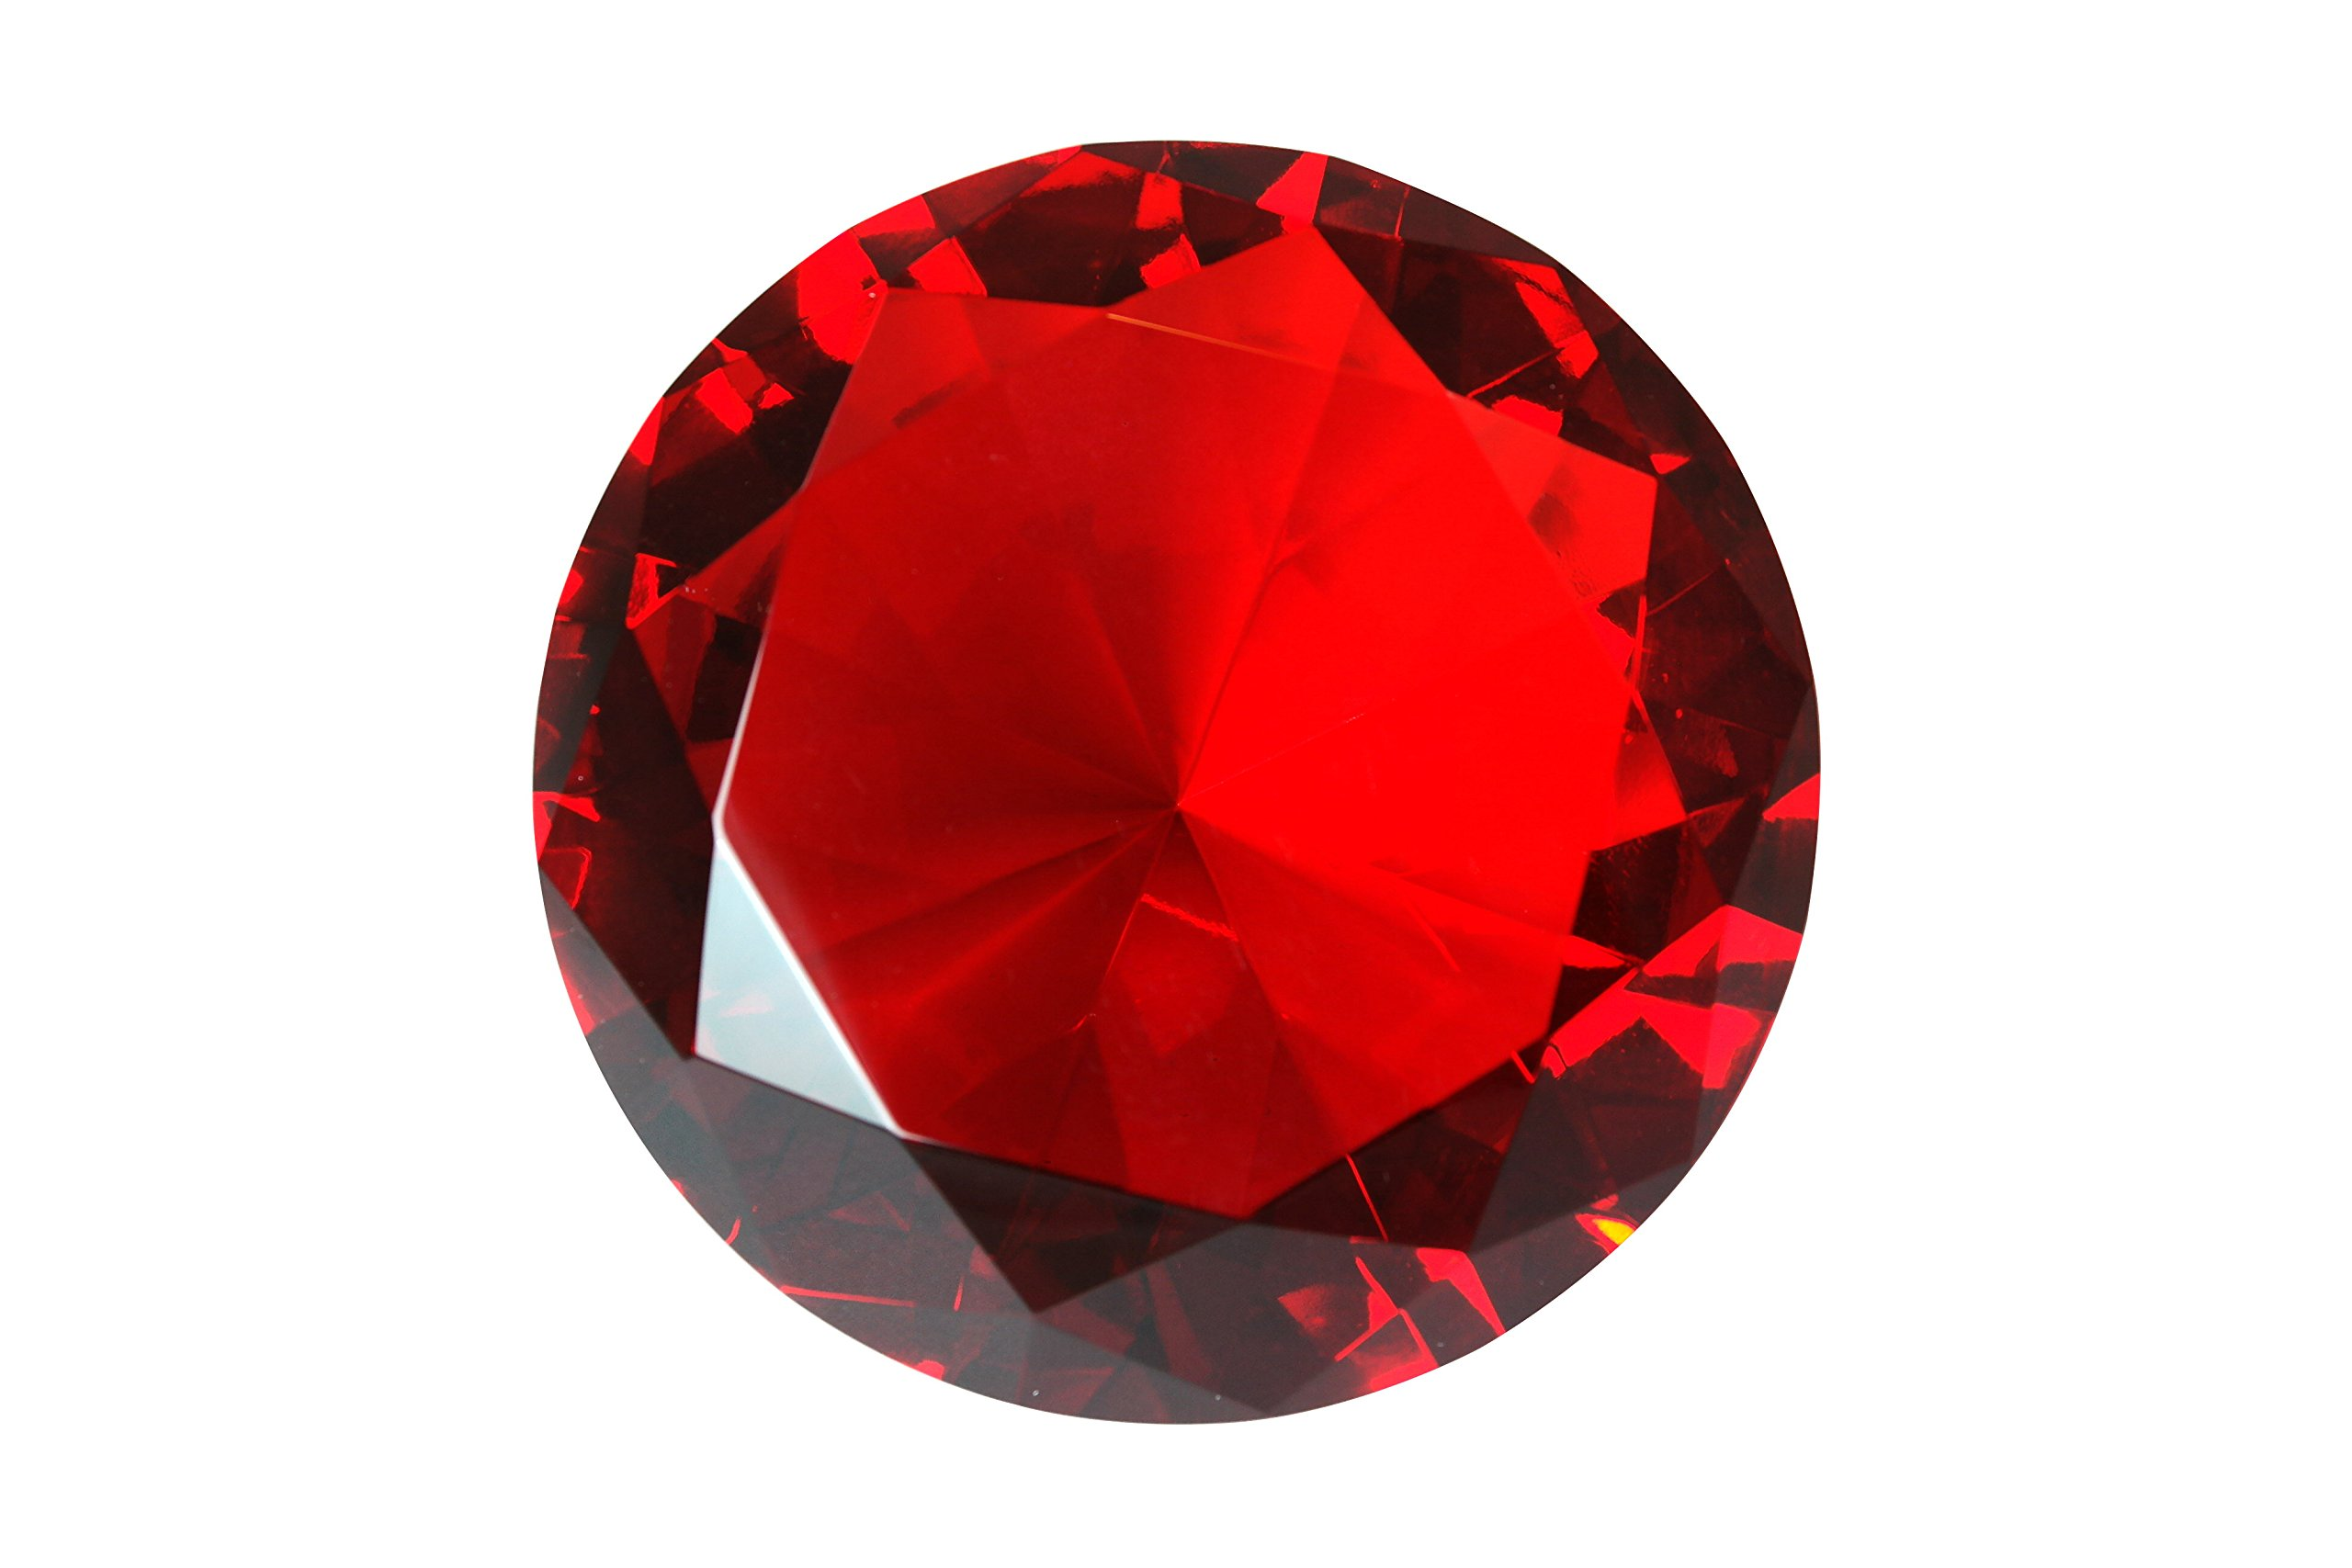 Tripact 80mm Red Crystal Diamond Jewel Crystal Paperweight 3.25 Inch